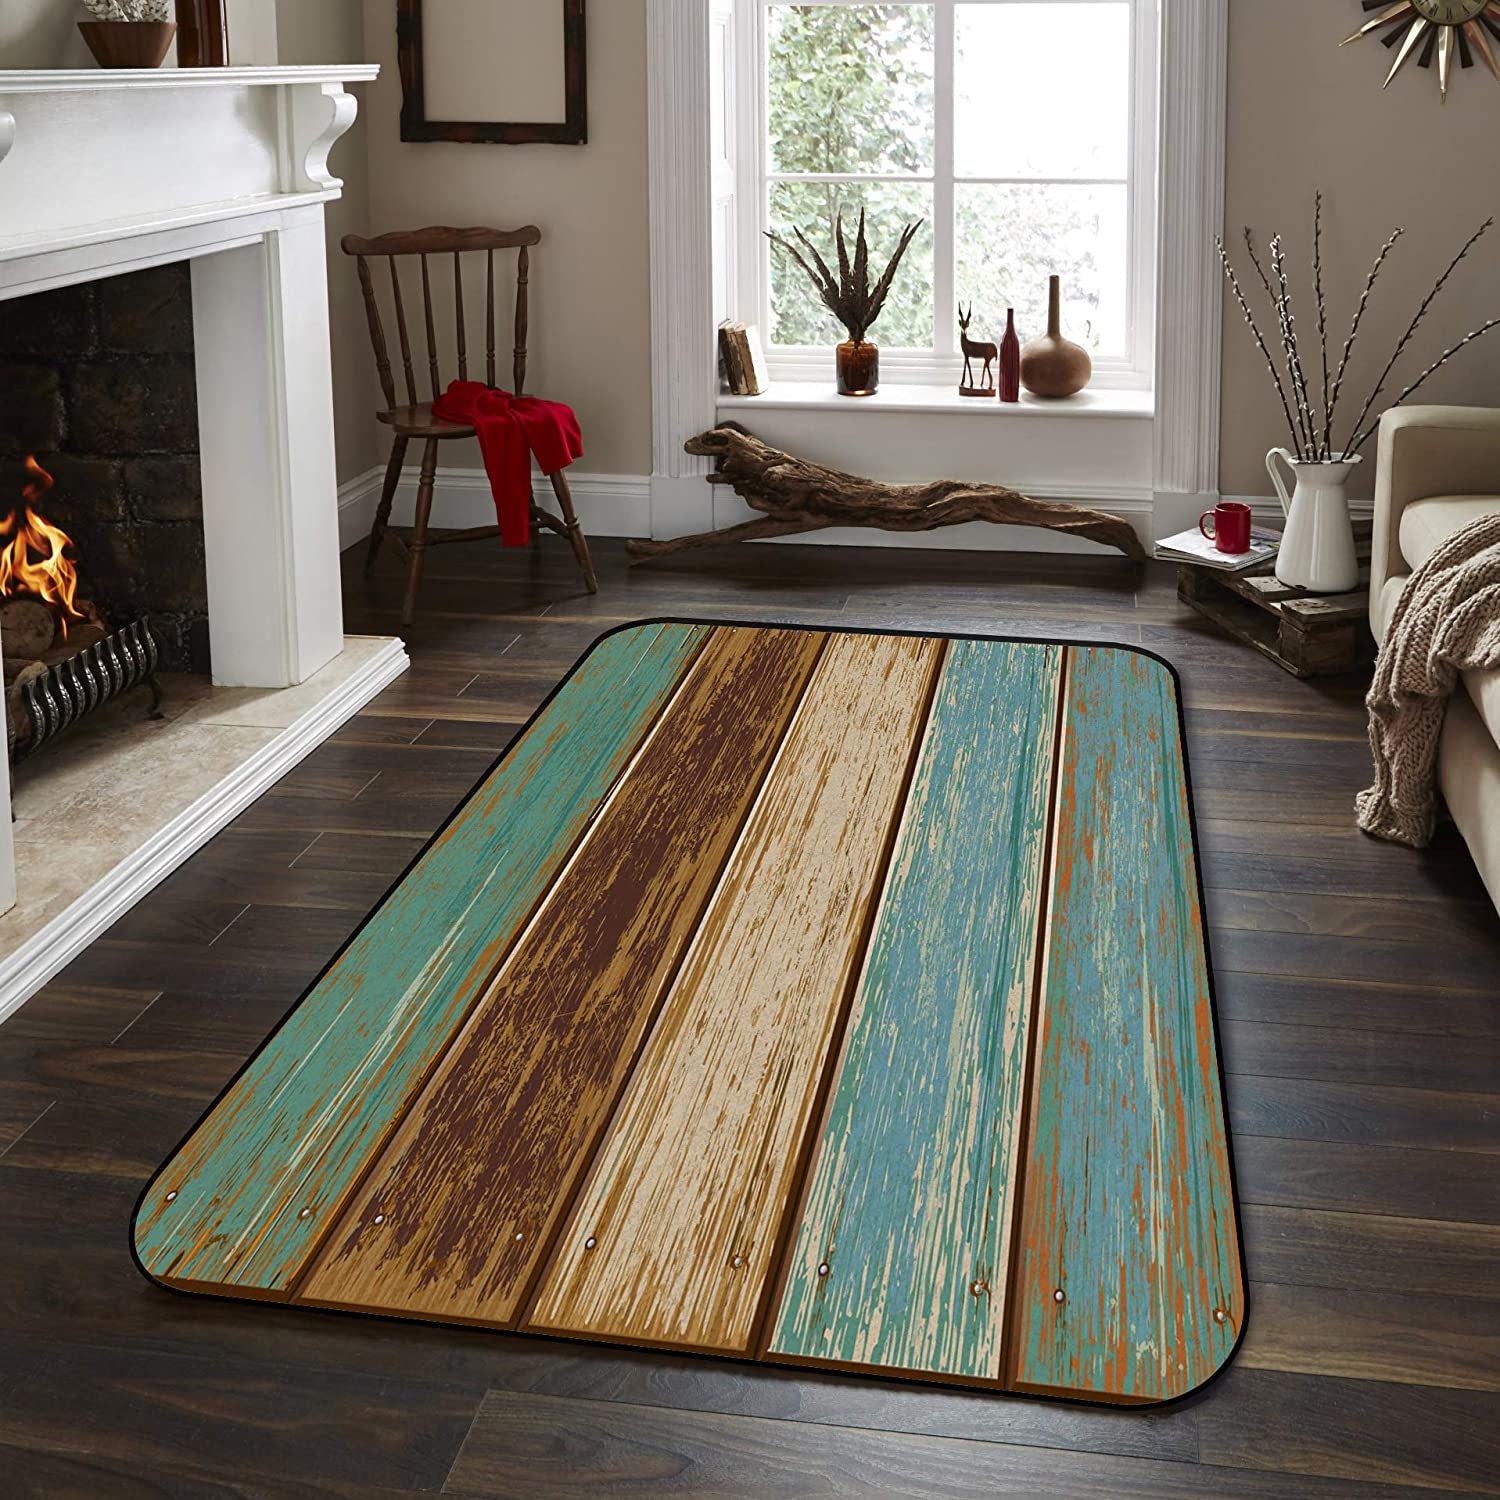 Soft Area Rugs for Bedroom Nautical Large special price 25% OFF Car Rug Rustic Wood Washable